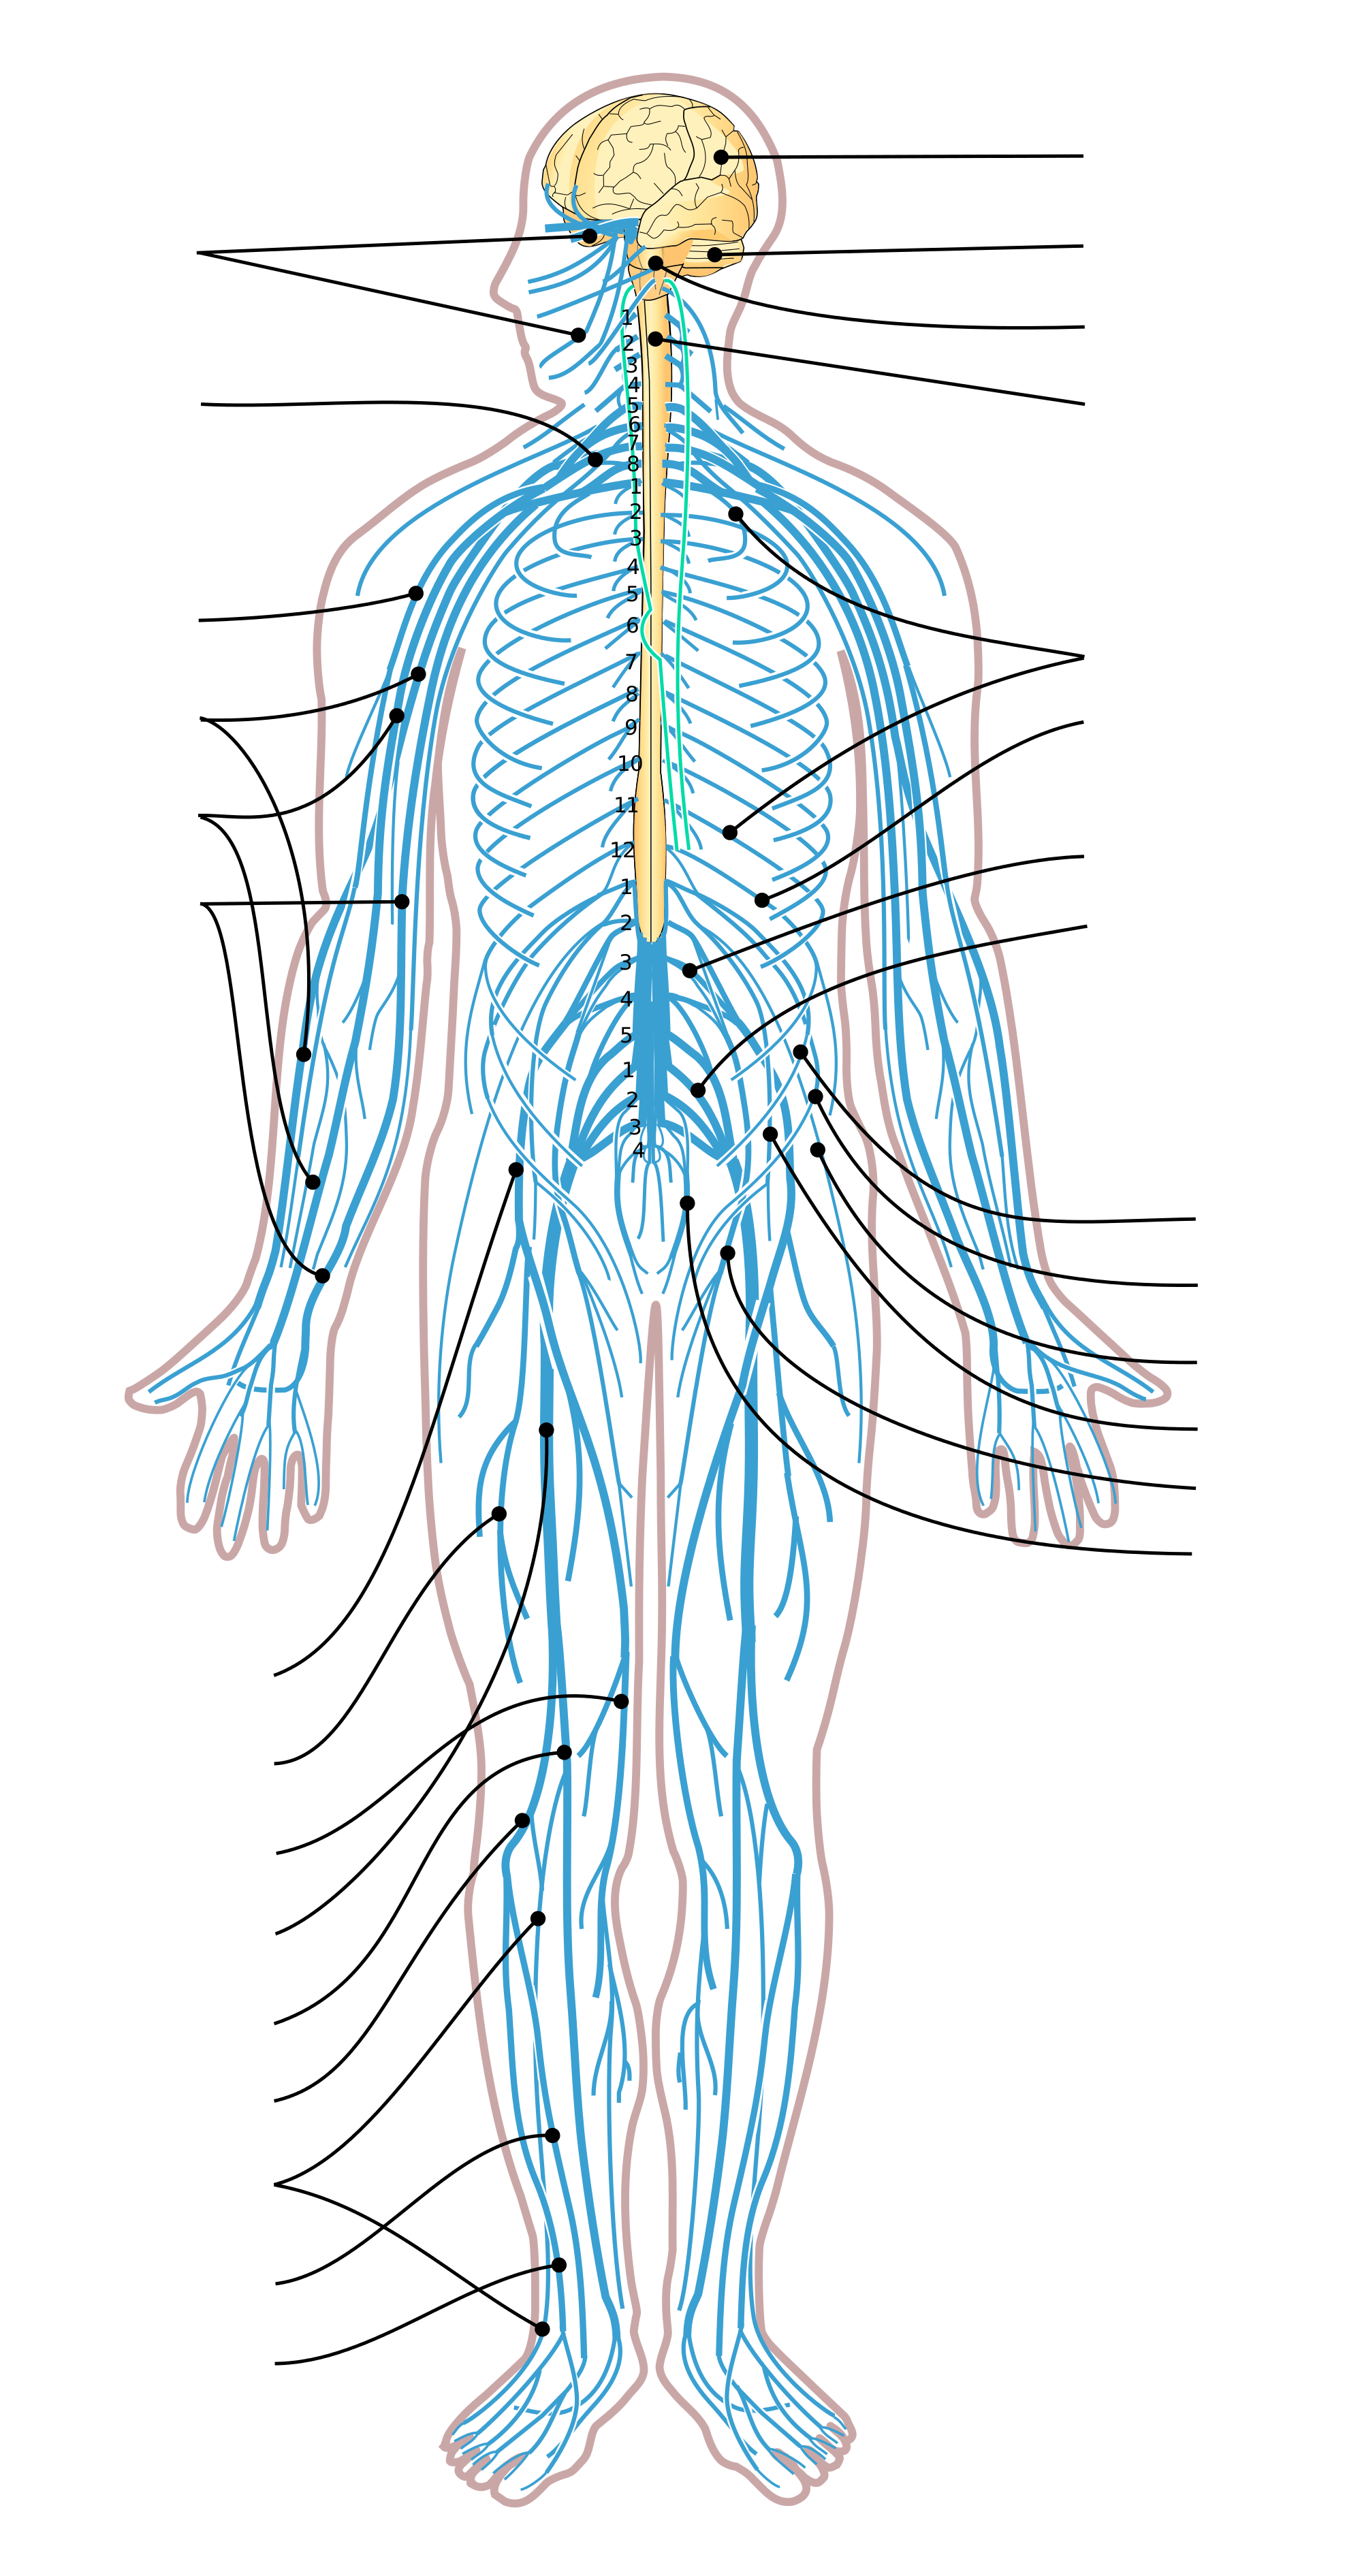 central nervous system labeled diagram jeep jk front suspension png transparent images